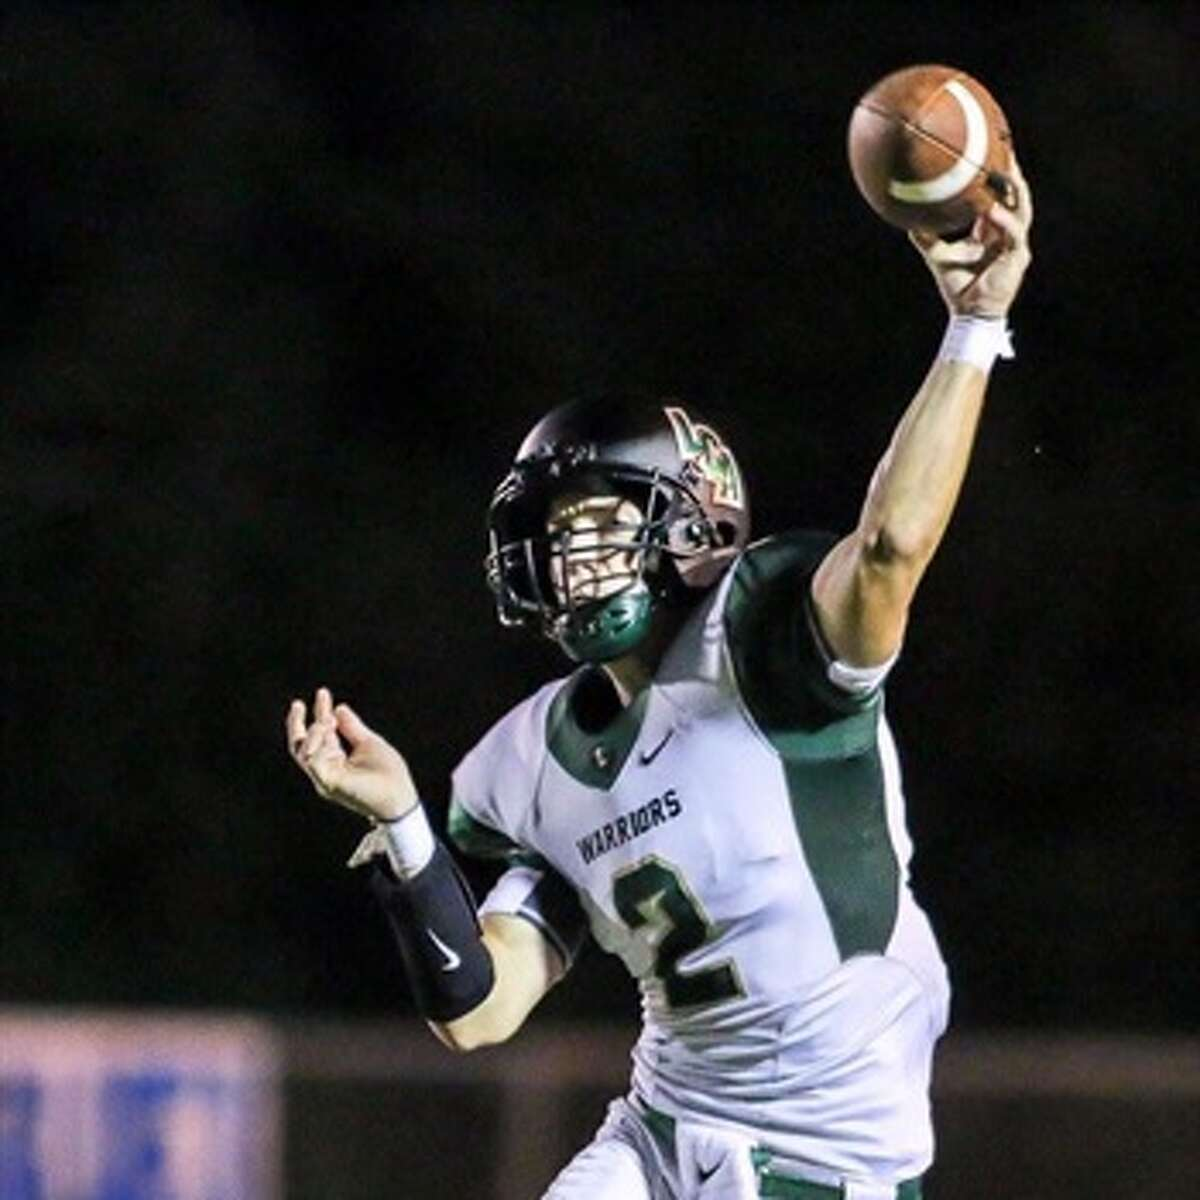 Holden Reese School: Legacy Christian Position: QBNotes: Reese threw for 156 yards, rushed for 108 yards with two touchdowns as the Warriors defeated defending state champion Northland Christian, 41-25.